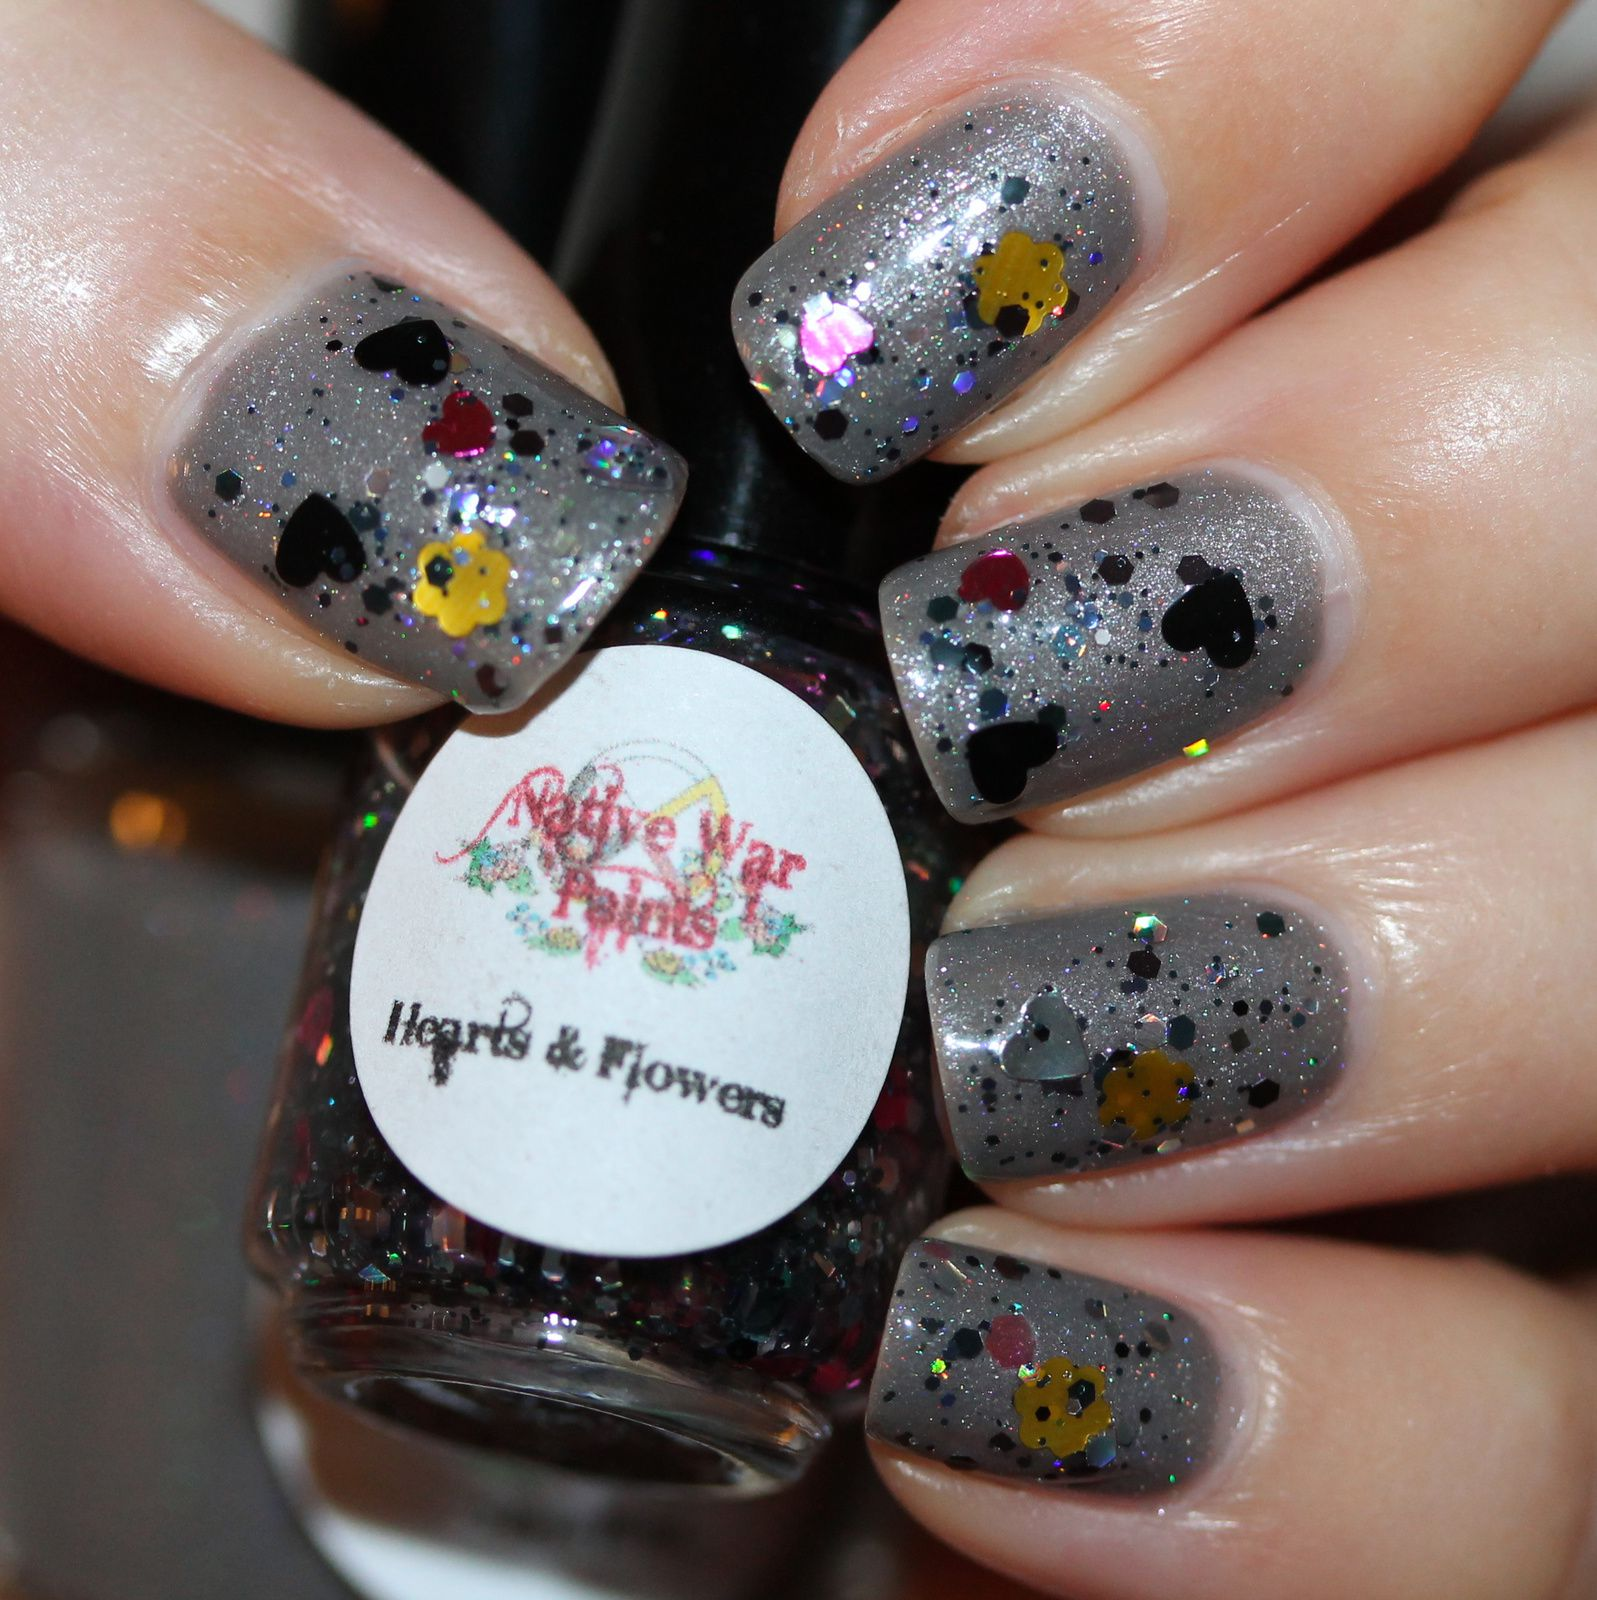 Native War Paints Hearts & Flowers (Over Later, Baby) (2 coats, no top coat)